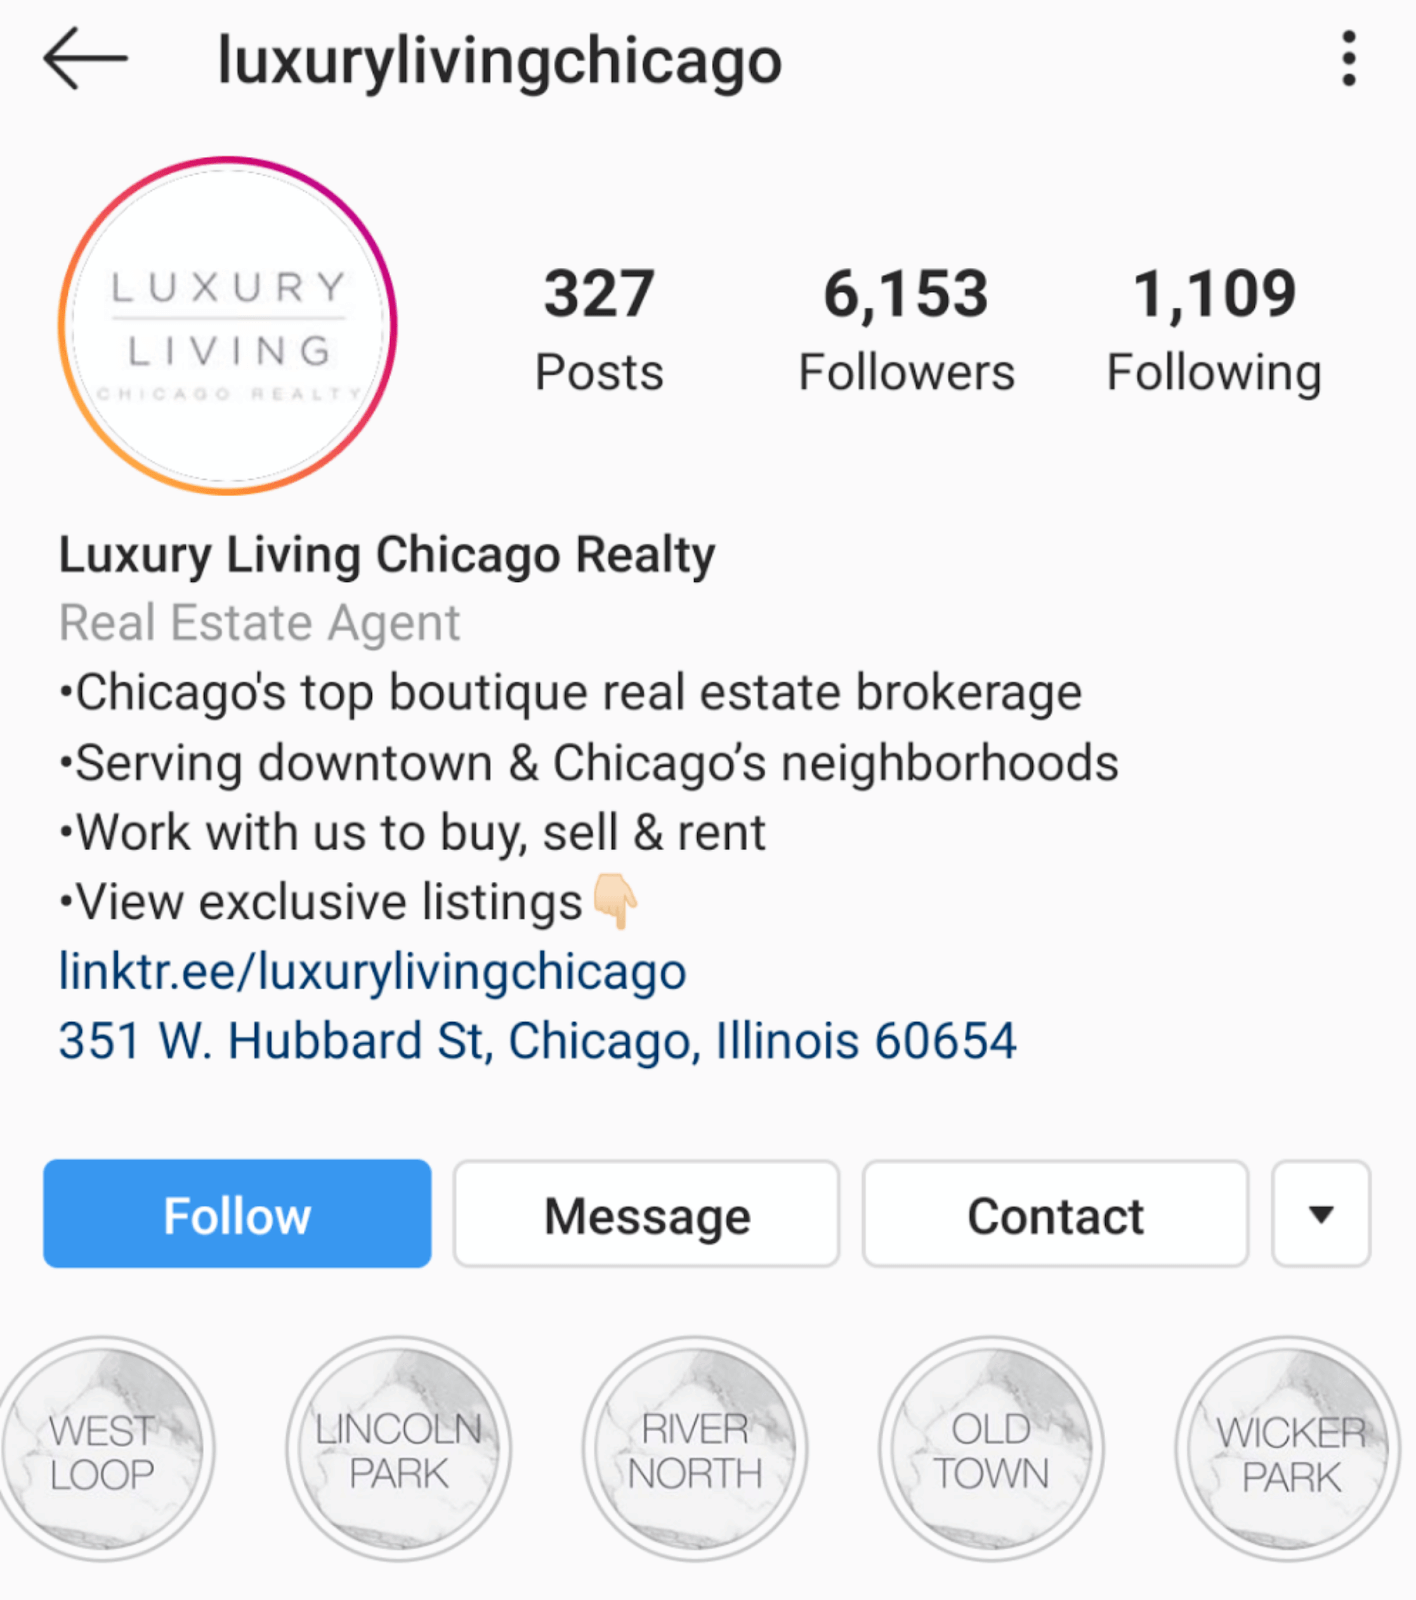 instagram account for business